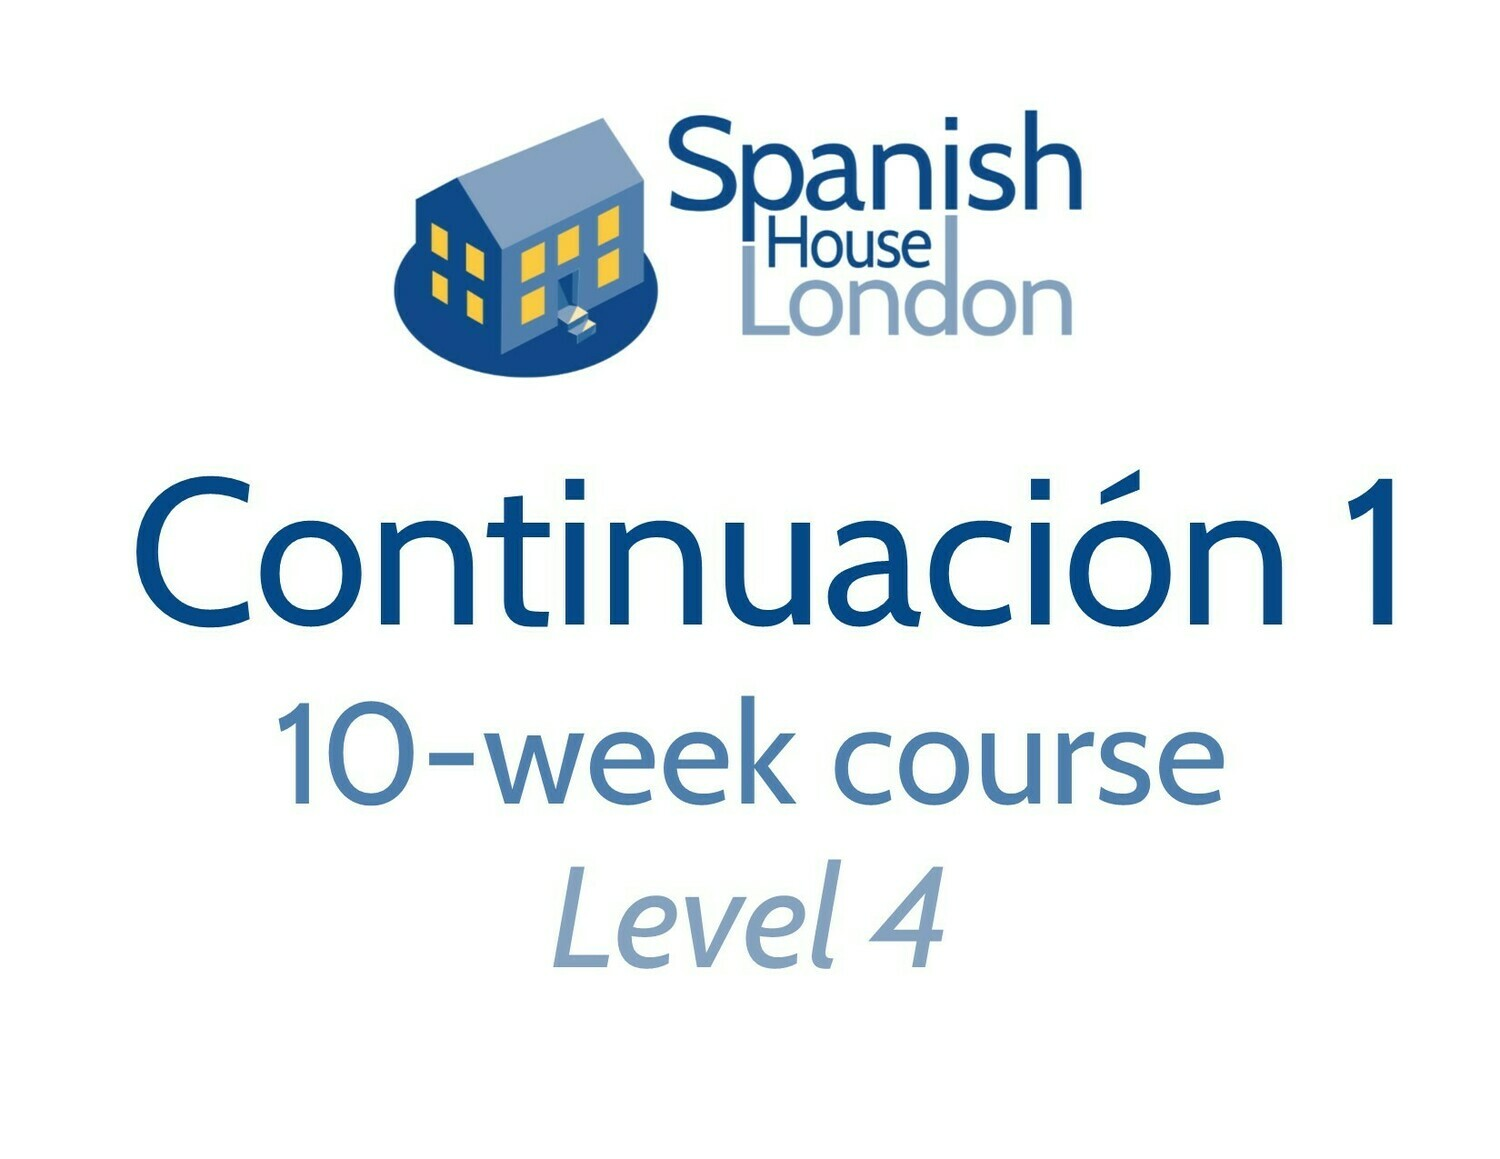 Continuación 1 Course starting on 5th November at 6pm in Canary Wharf